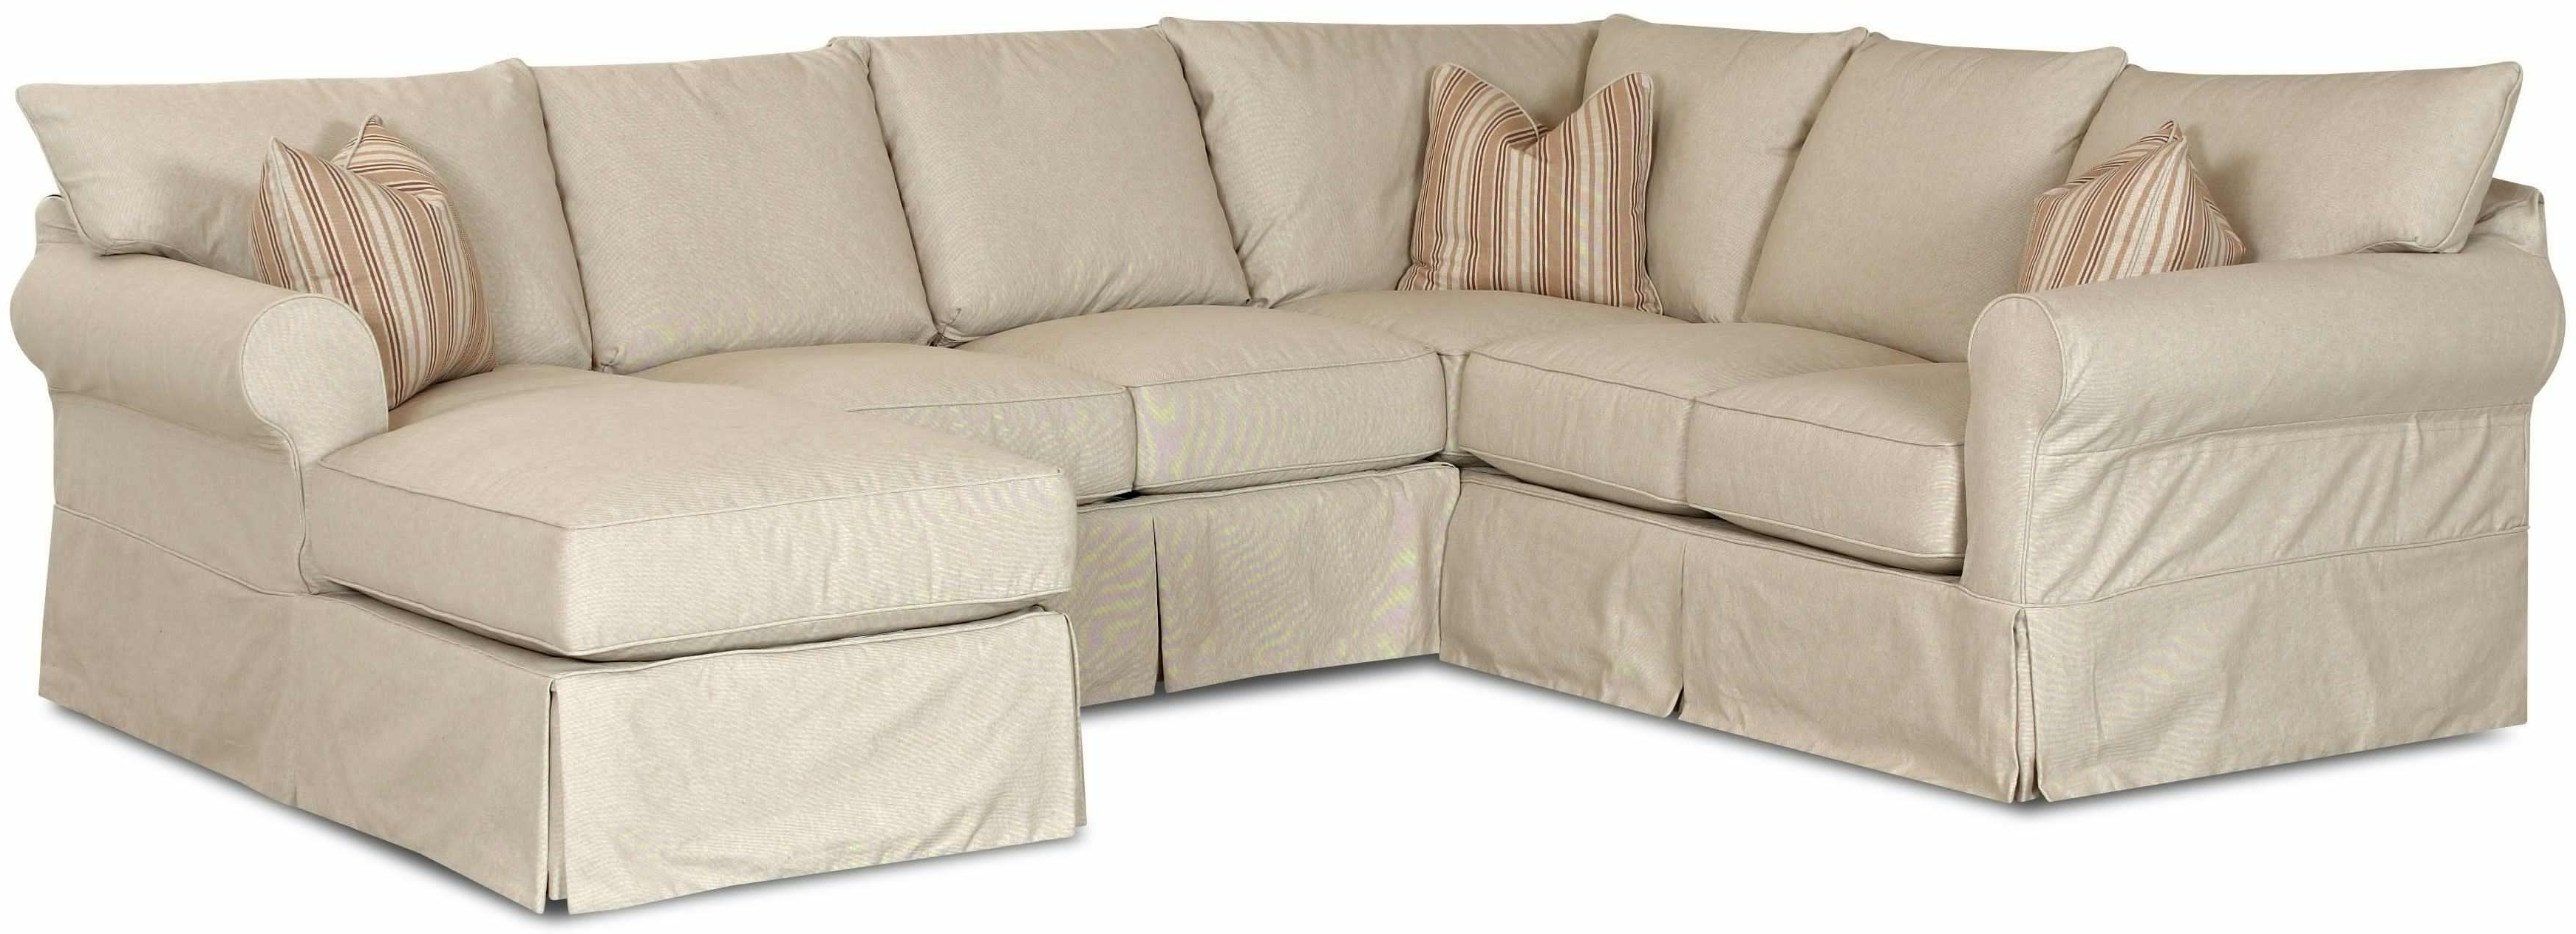 Favorite Slipcover Sectional Sofas With Chaise Intended For Sectional Sofa Design: Slipcovered Sectional Sofa Chaise Reviews (View 9 of 15)